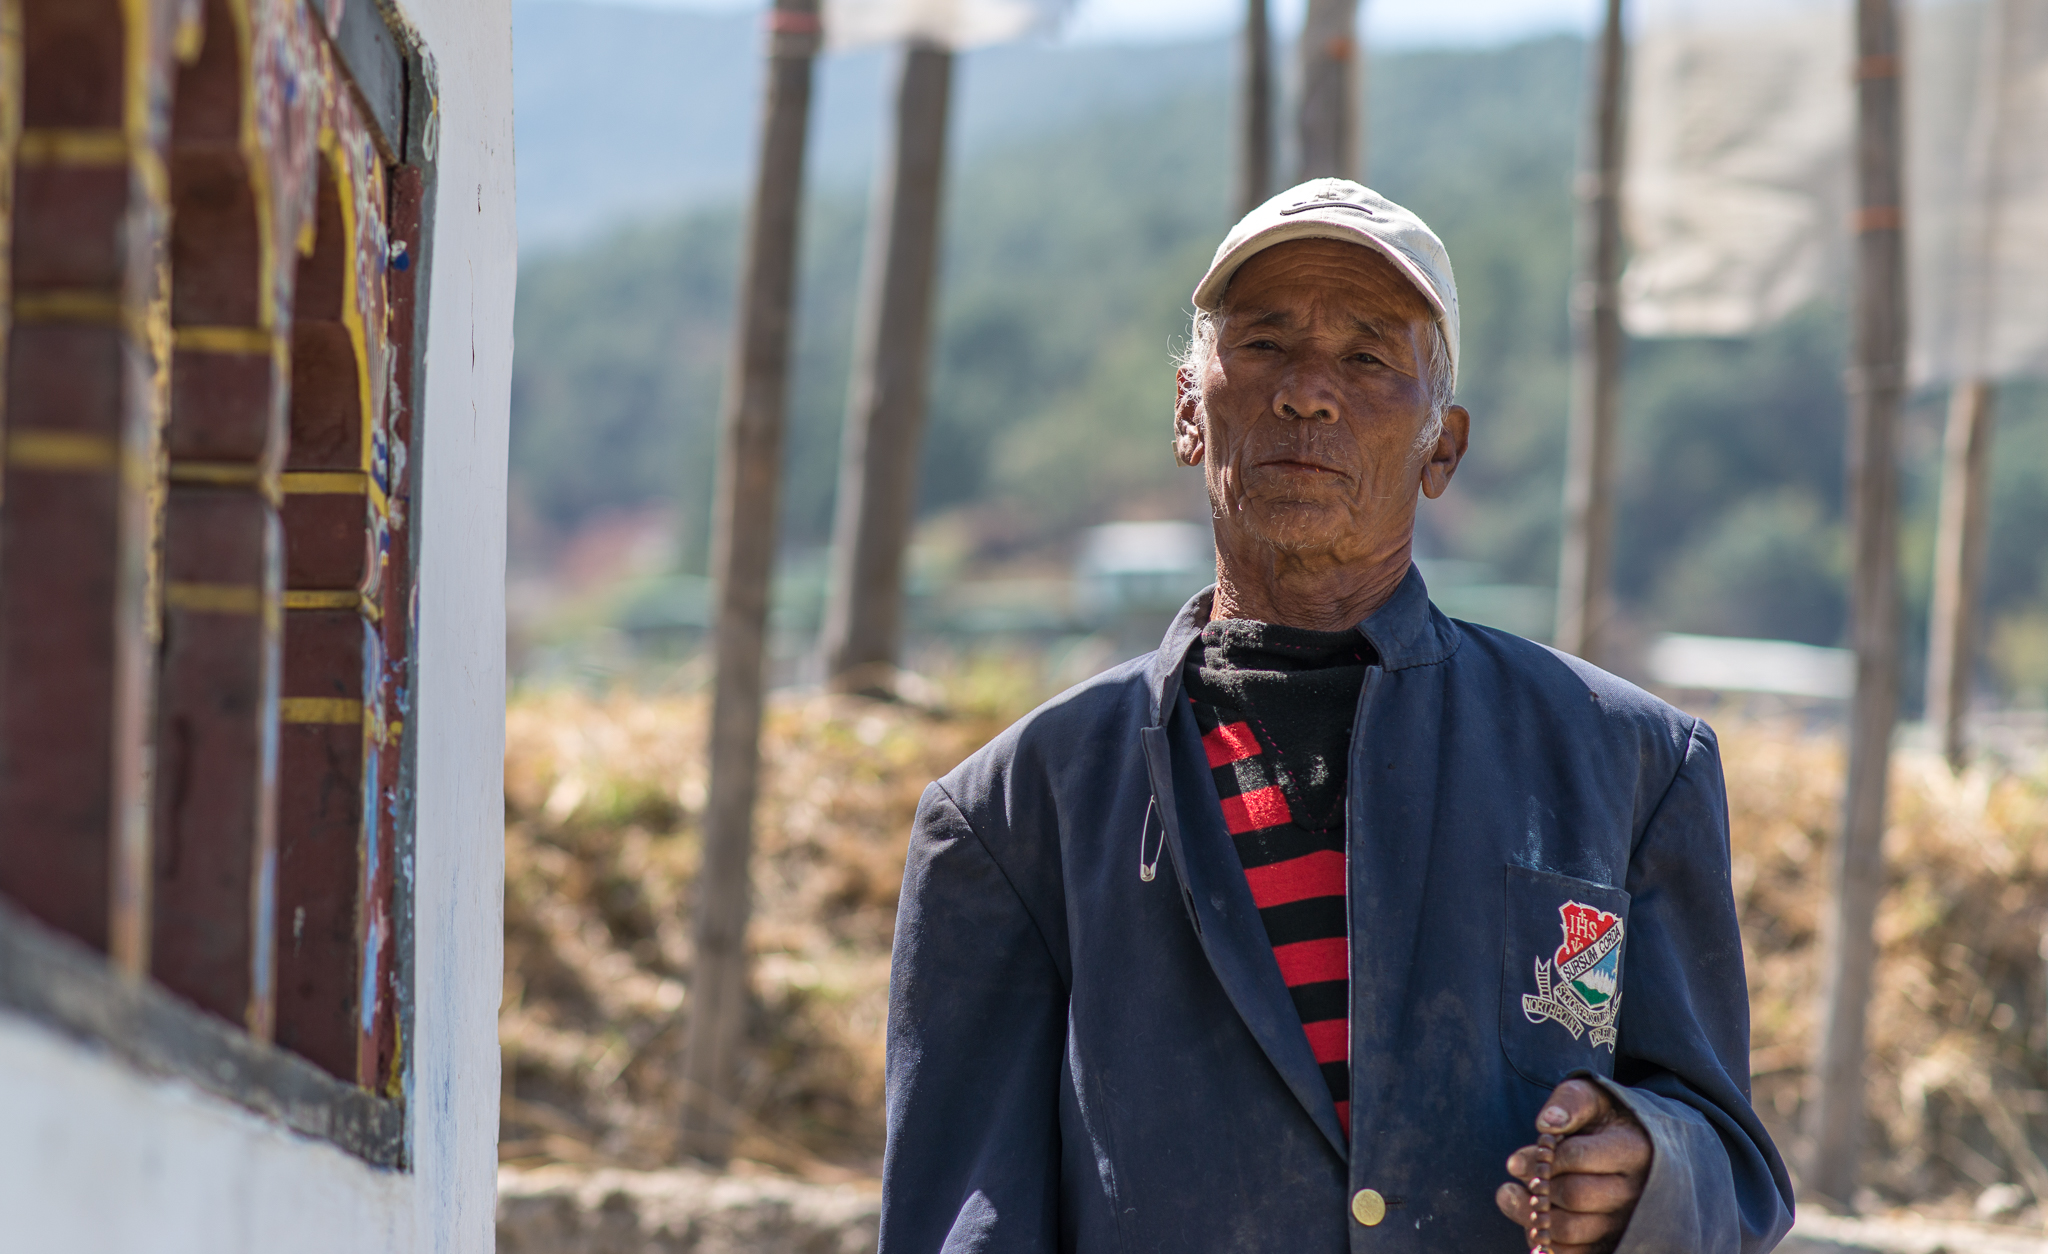 A local man we met on the hike.  He is 80 years old.  He was praying and spinning the prayer wheels.